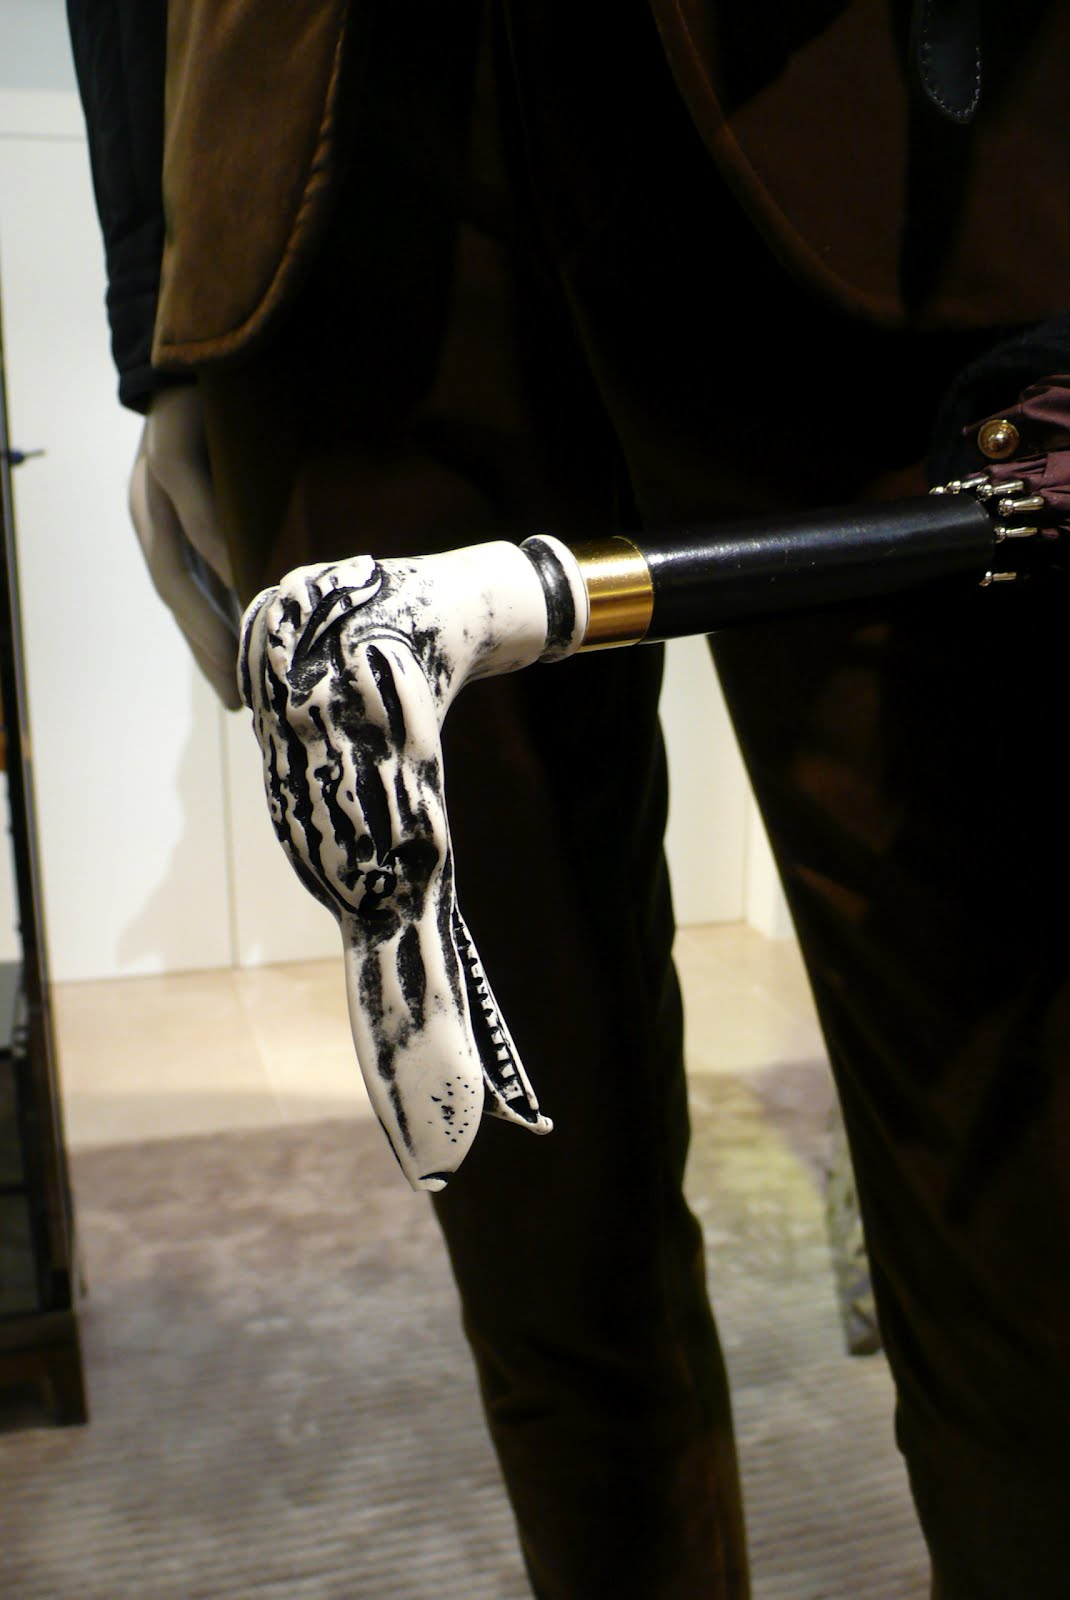 00O00 London Menswear Blog Burberry Prorsum Fall Winter 2012 accessories  umbrella and shoes 034ac836353c5